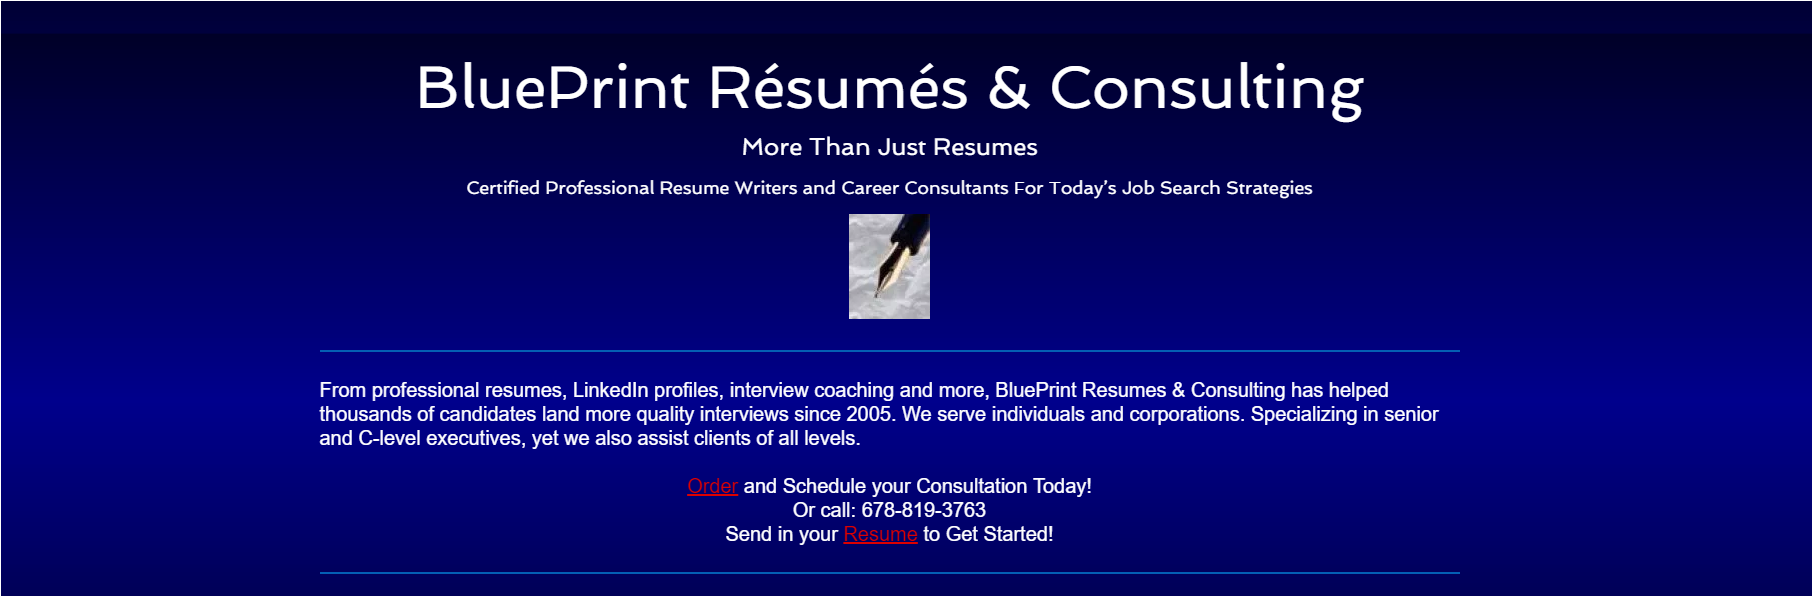 10 Best Resume Writers in 2019 — screenshot of BluePrint Resumes & Consulting homepage